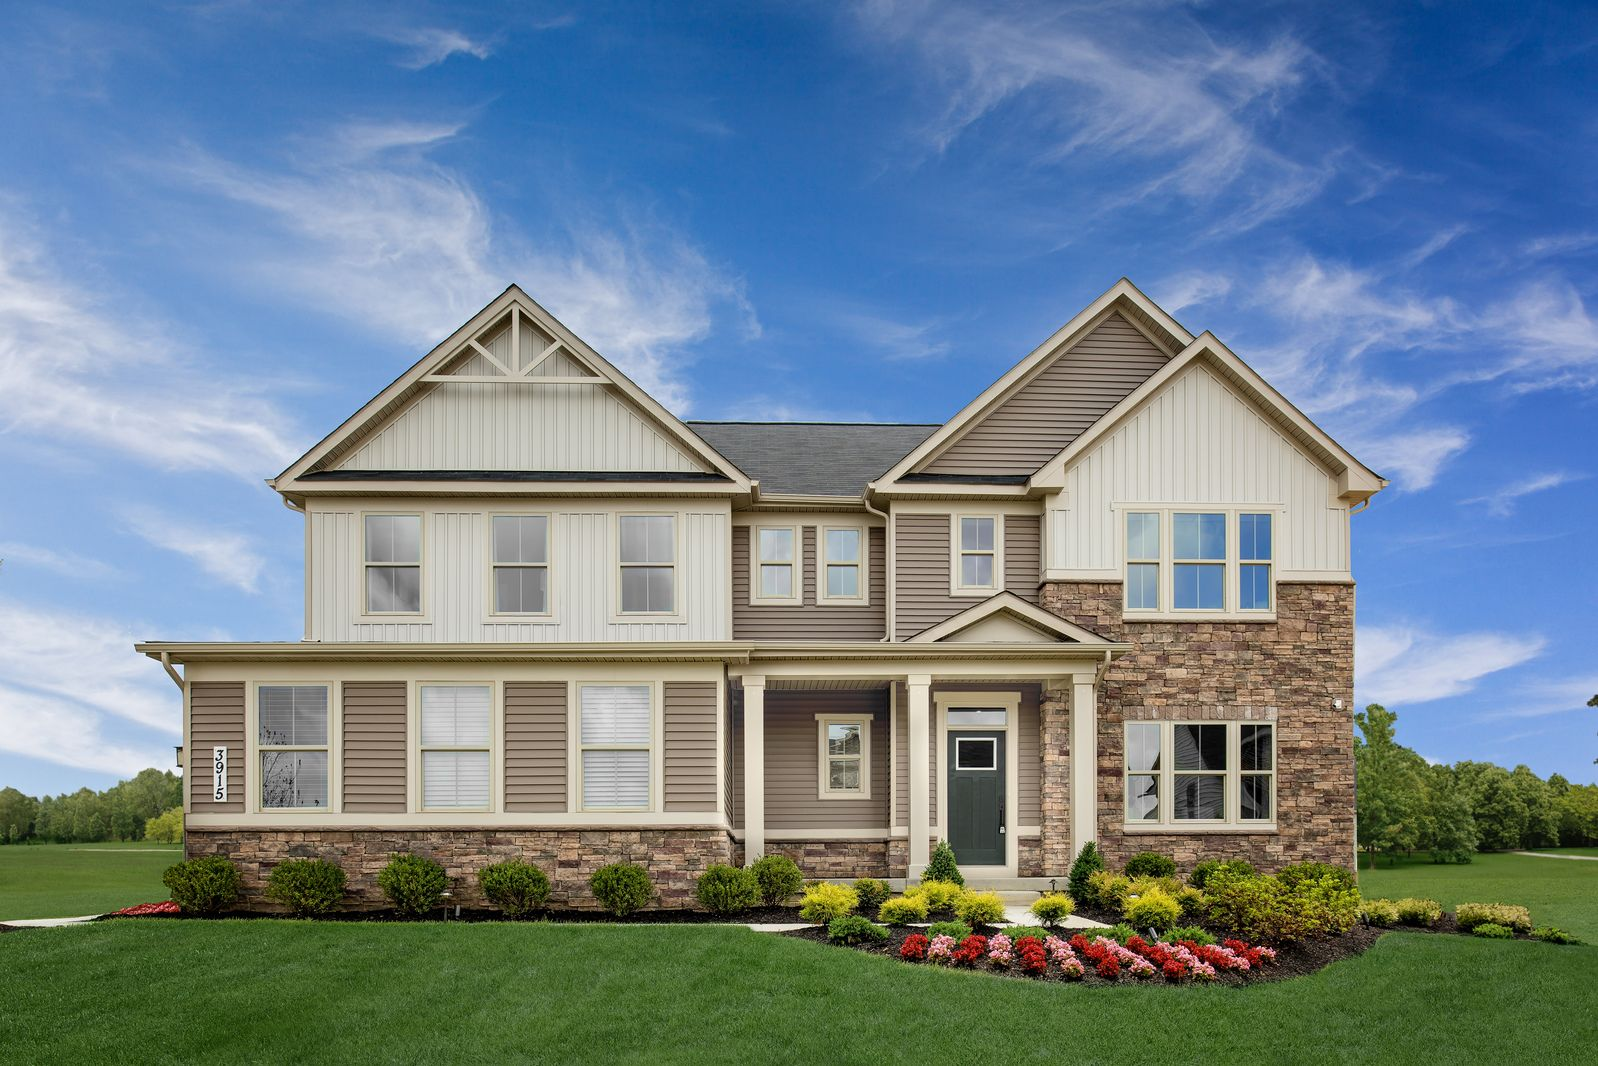 ONLY 2 HOMESITES REMAIN! We have sold 10 homes in 60 days! Final two opportunities to buy in Harper's Mill won't last long. Schedule your visit today!